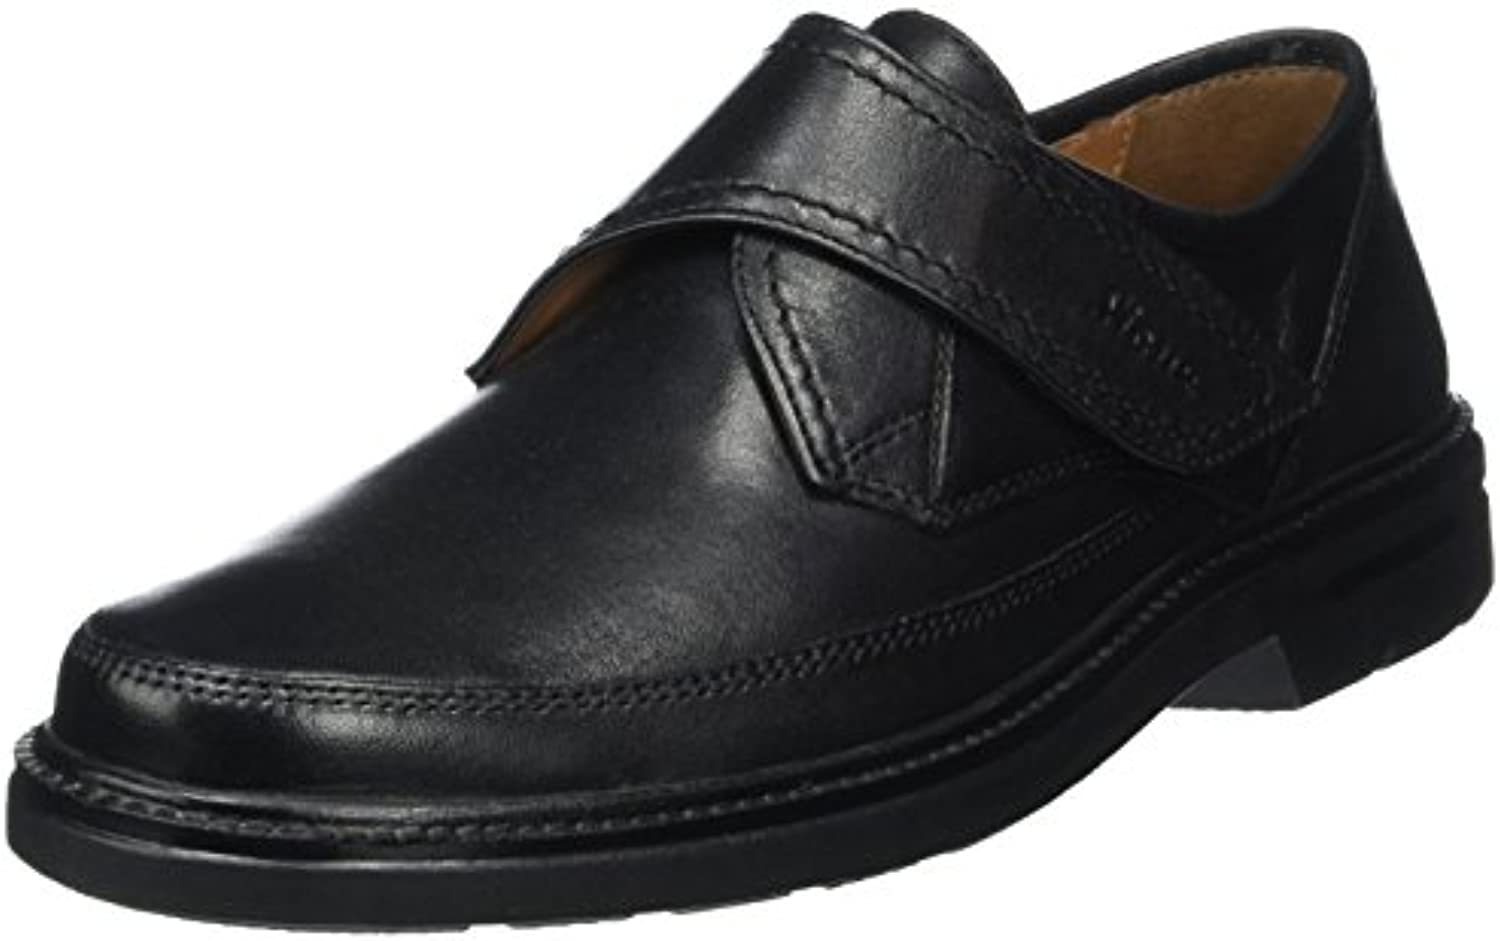 Sioux 7139540  Herren Slipper  Mokassins